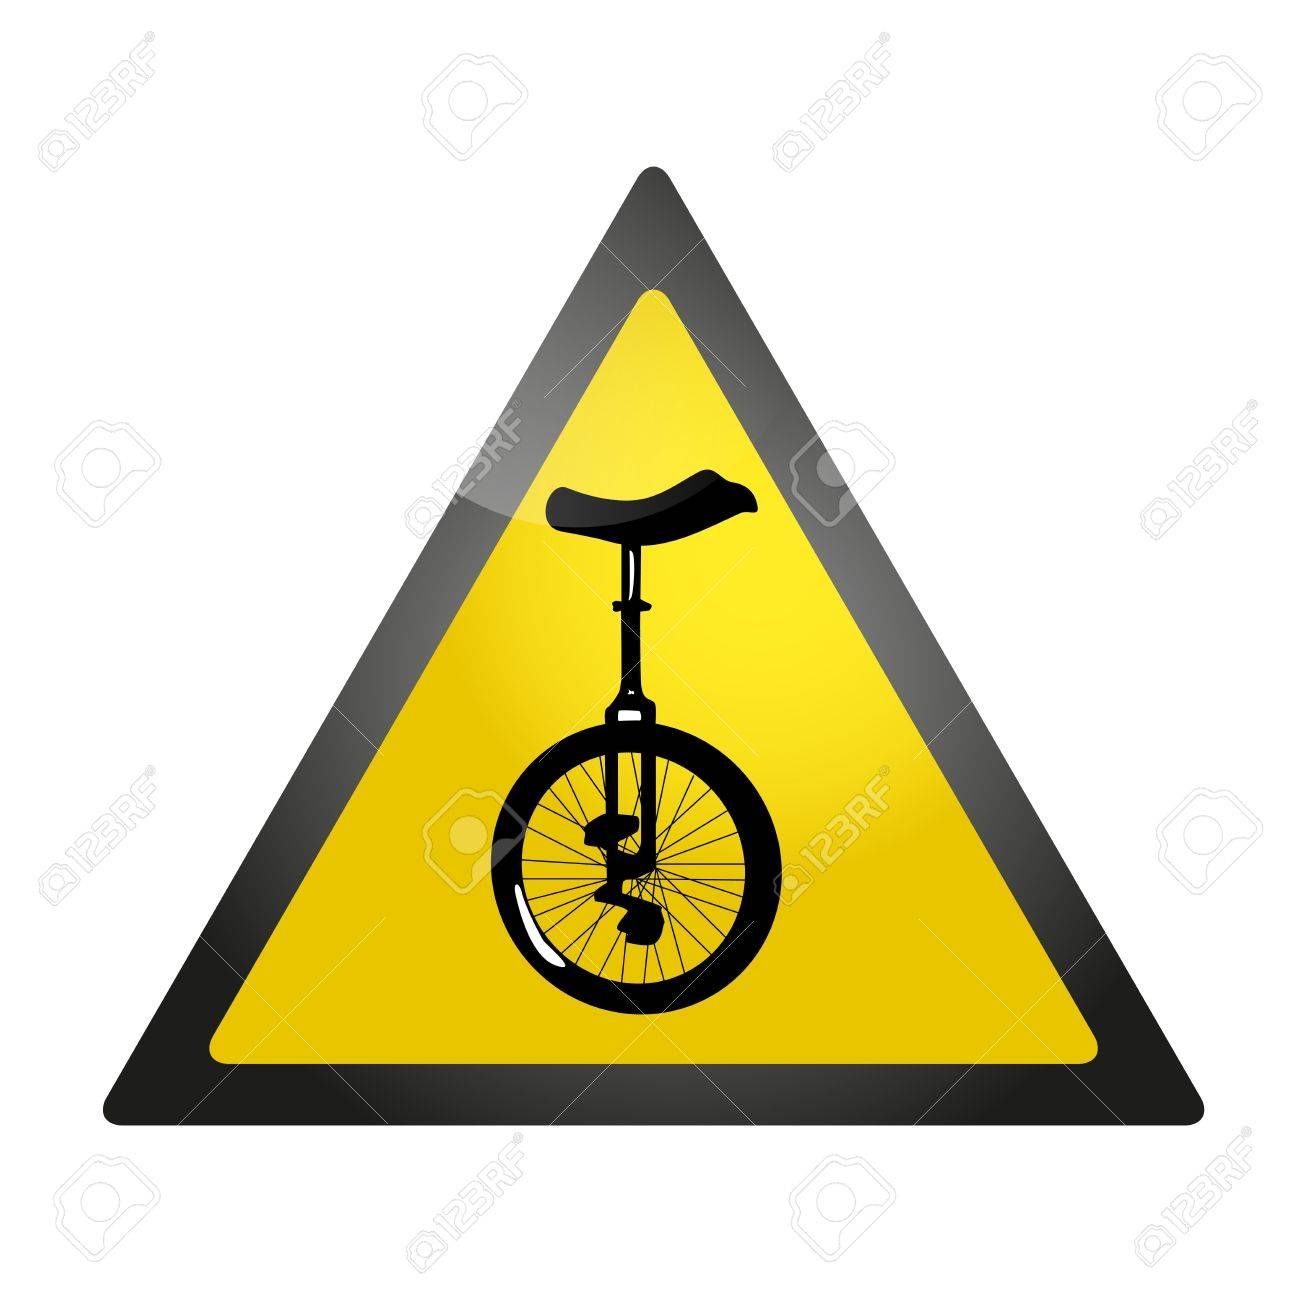 Yellow roadsign warning about a presence of unicycles Stock Vector - 21775914